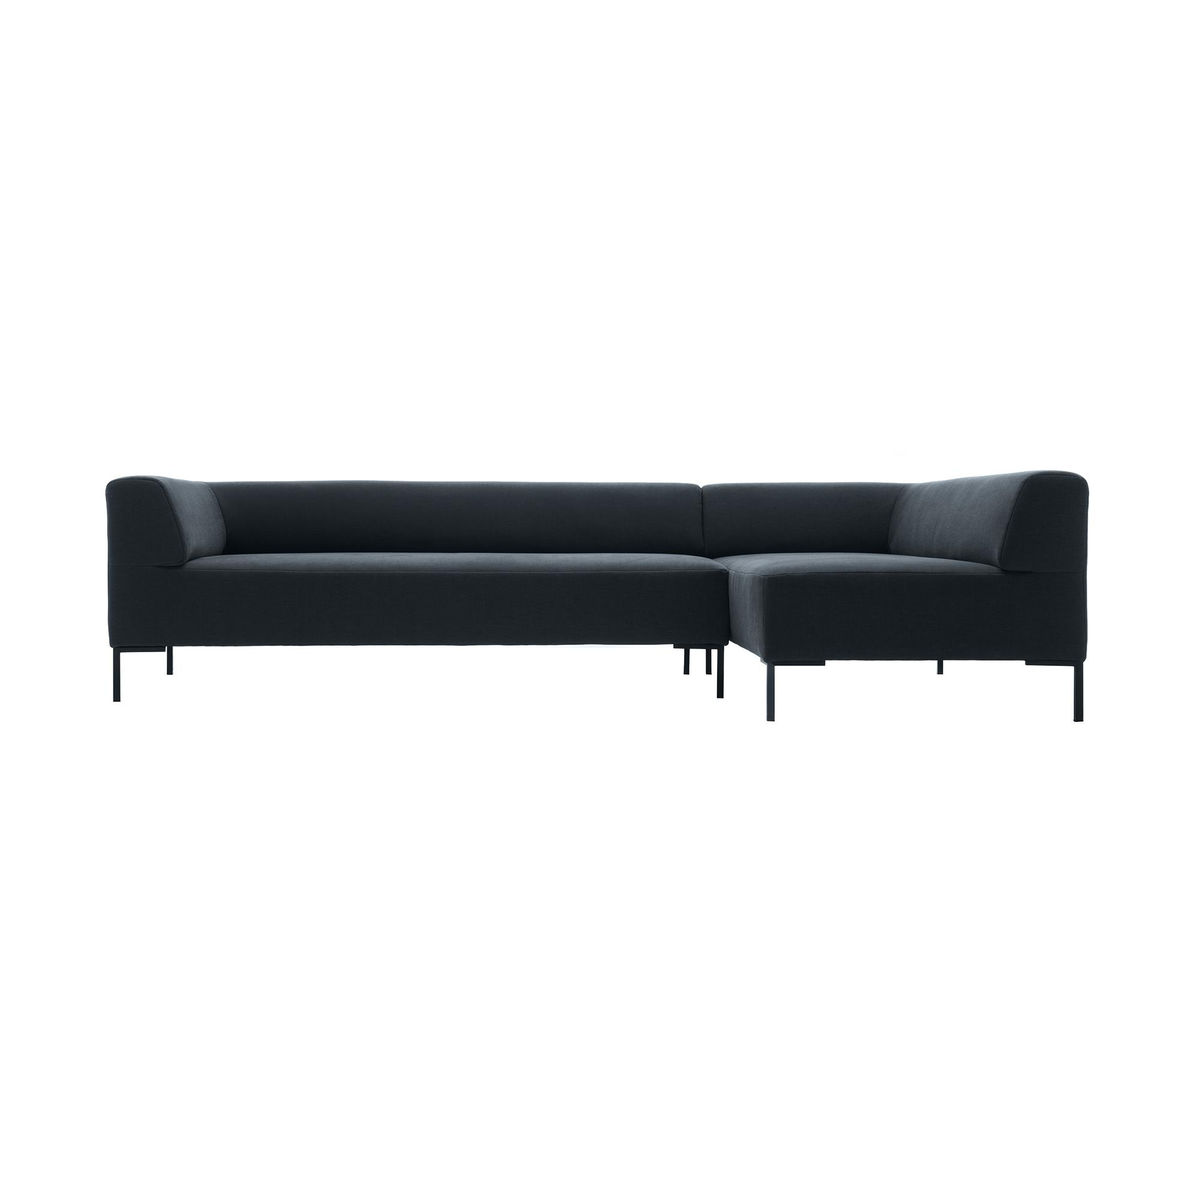 freistil 185 loungesofa 257x180cm freistil rolf benz. Black Bedroom Furniture Sets. Home Design Ideas